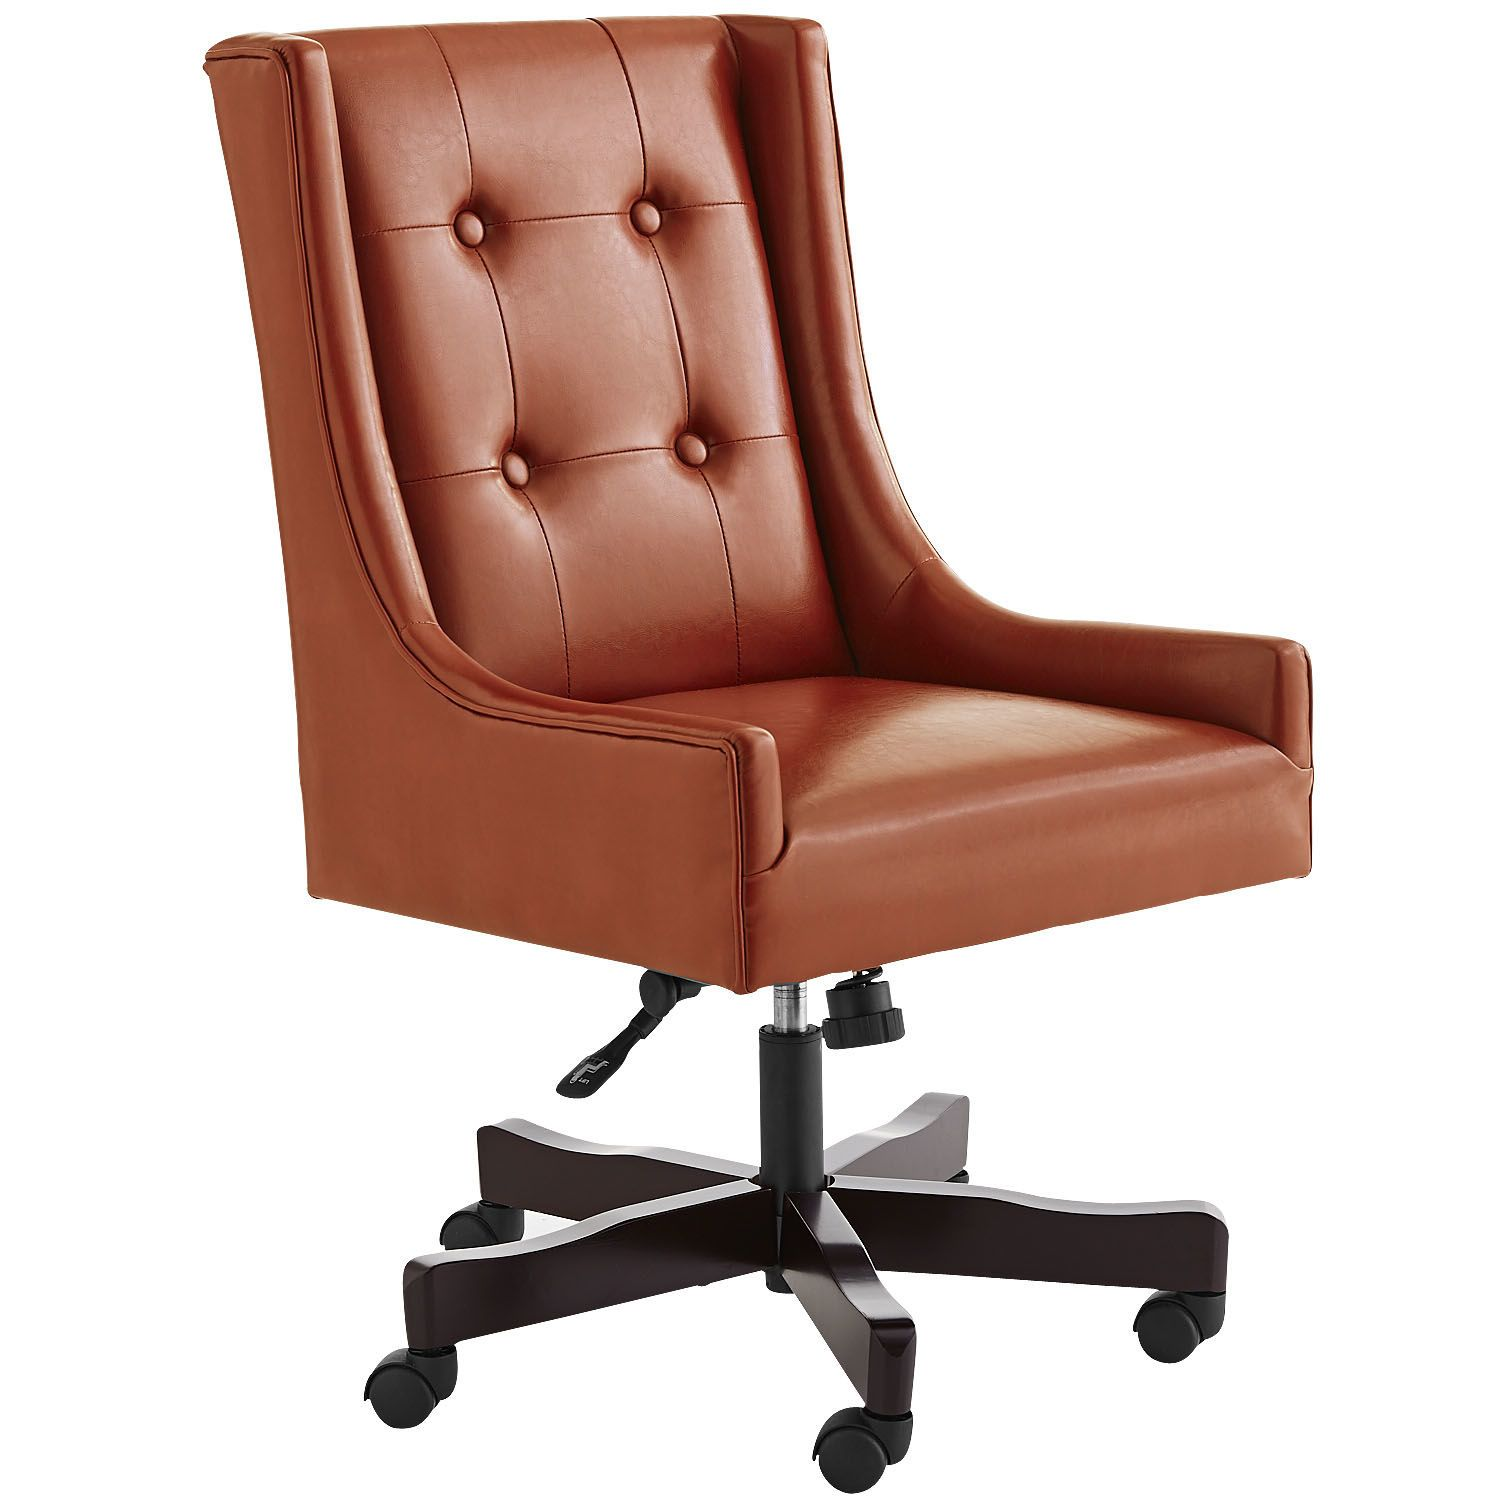 Mason Swivel Desk Chair   Rust | Pier 1 Imports For Remyu0027s Home Office